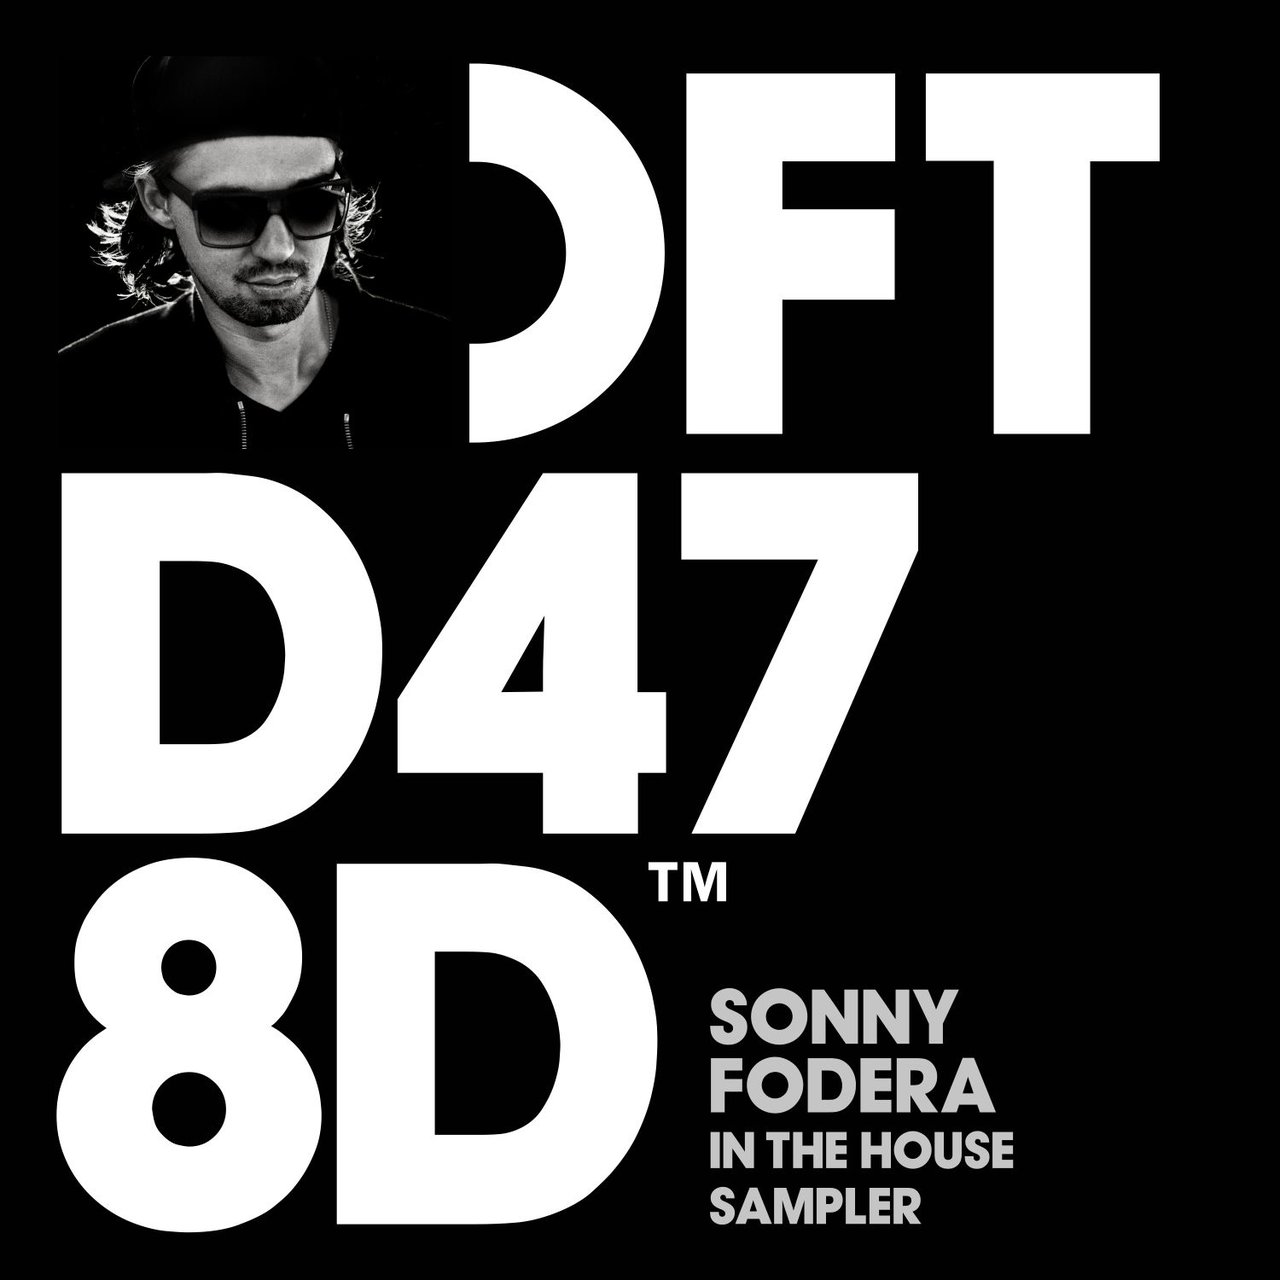 Sonny Fodera In The House Sampler